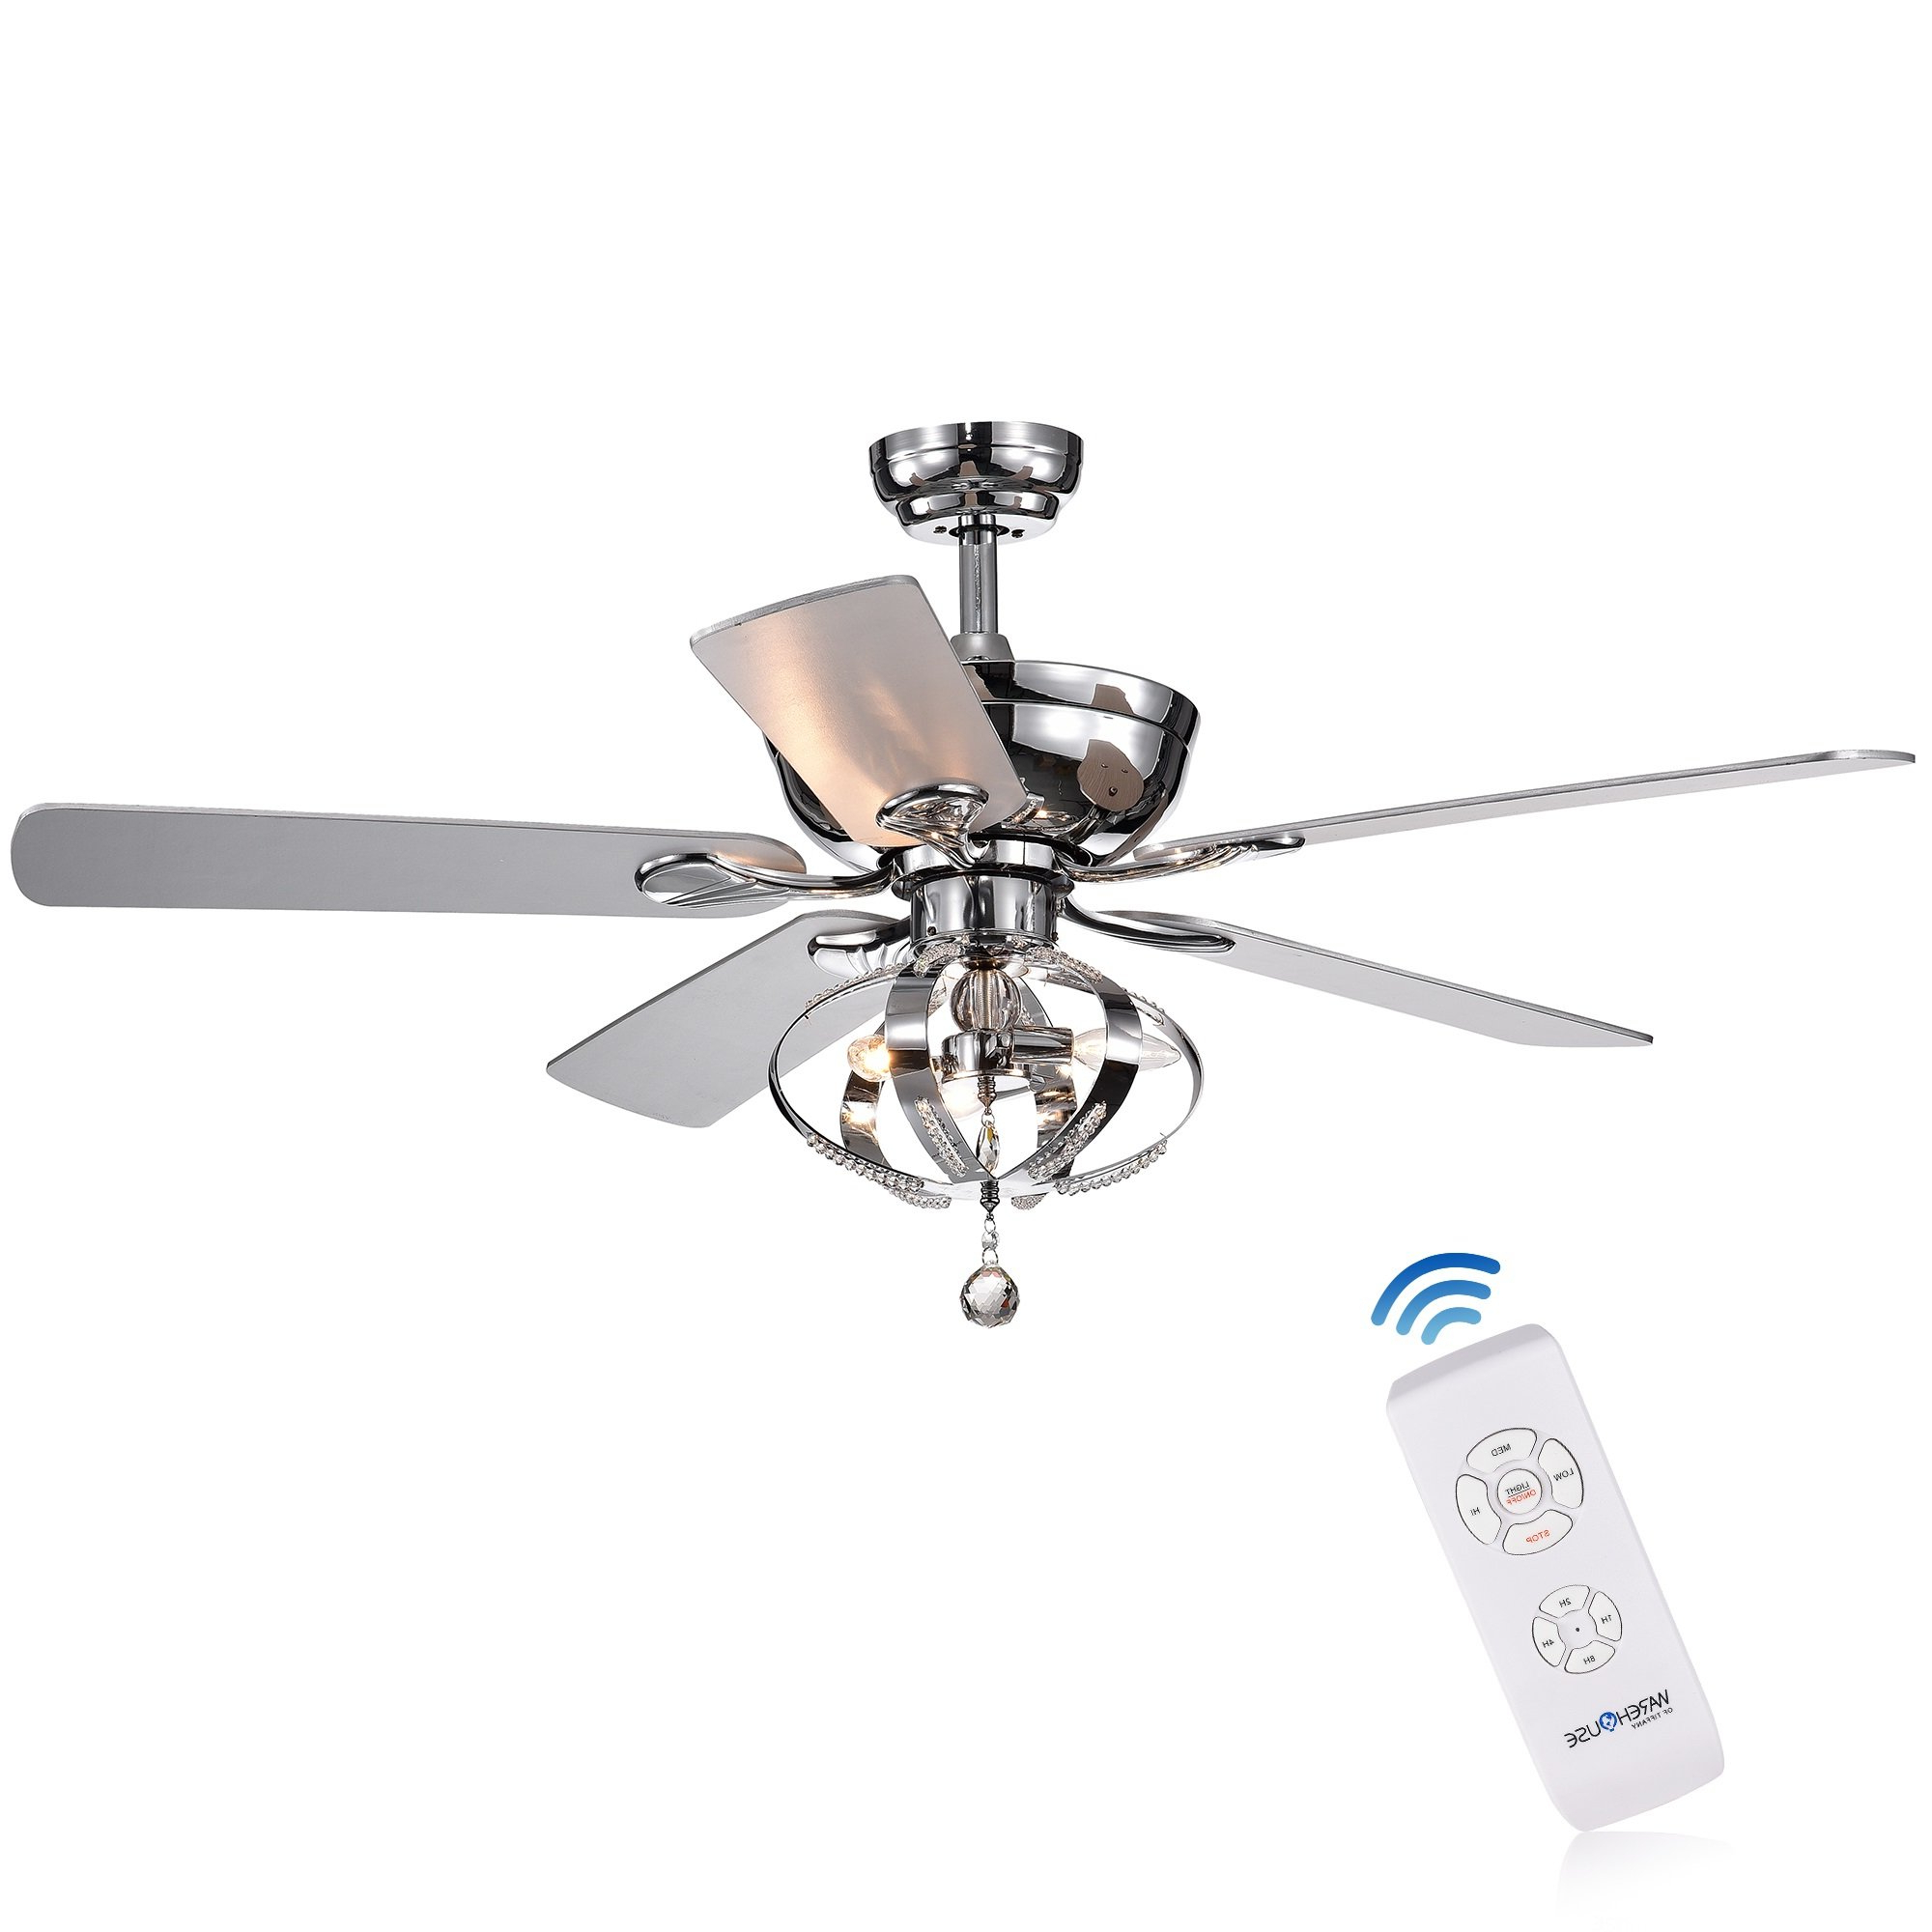 """52"""" Davies 5 Blade Ceiling Fan With Remote Intended For Most Recently Released 5 Blade Ceiling Fans With Remote (Gallery 4 of 20)"""